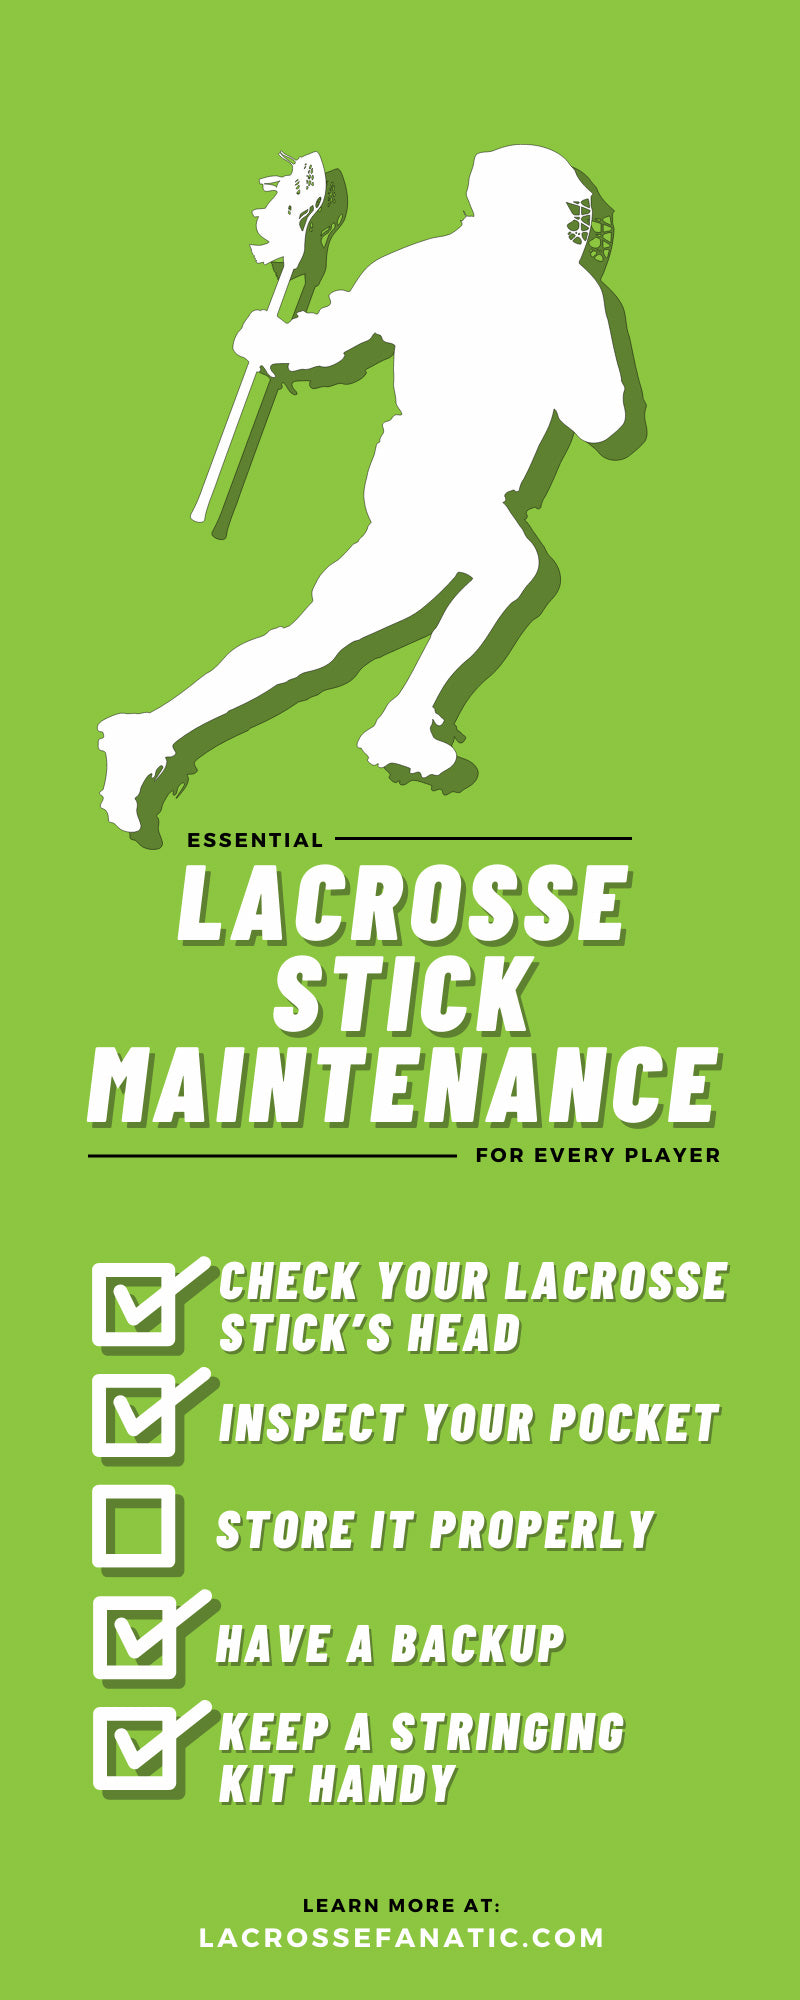 Essential Lacrosse Stick Maintenance for Every Player